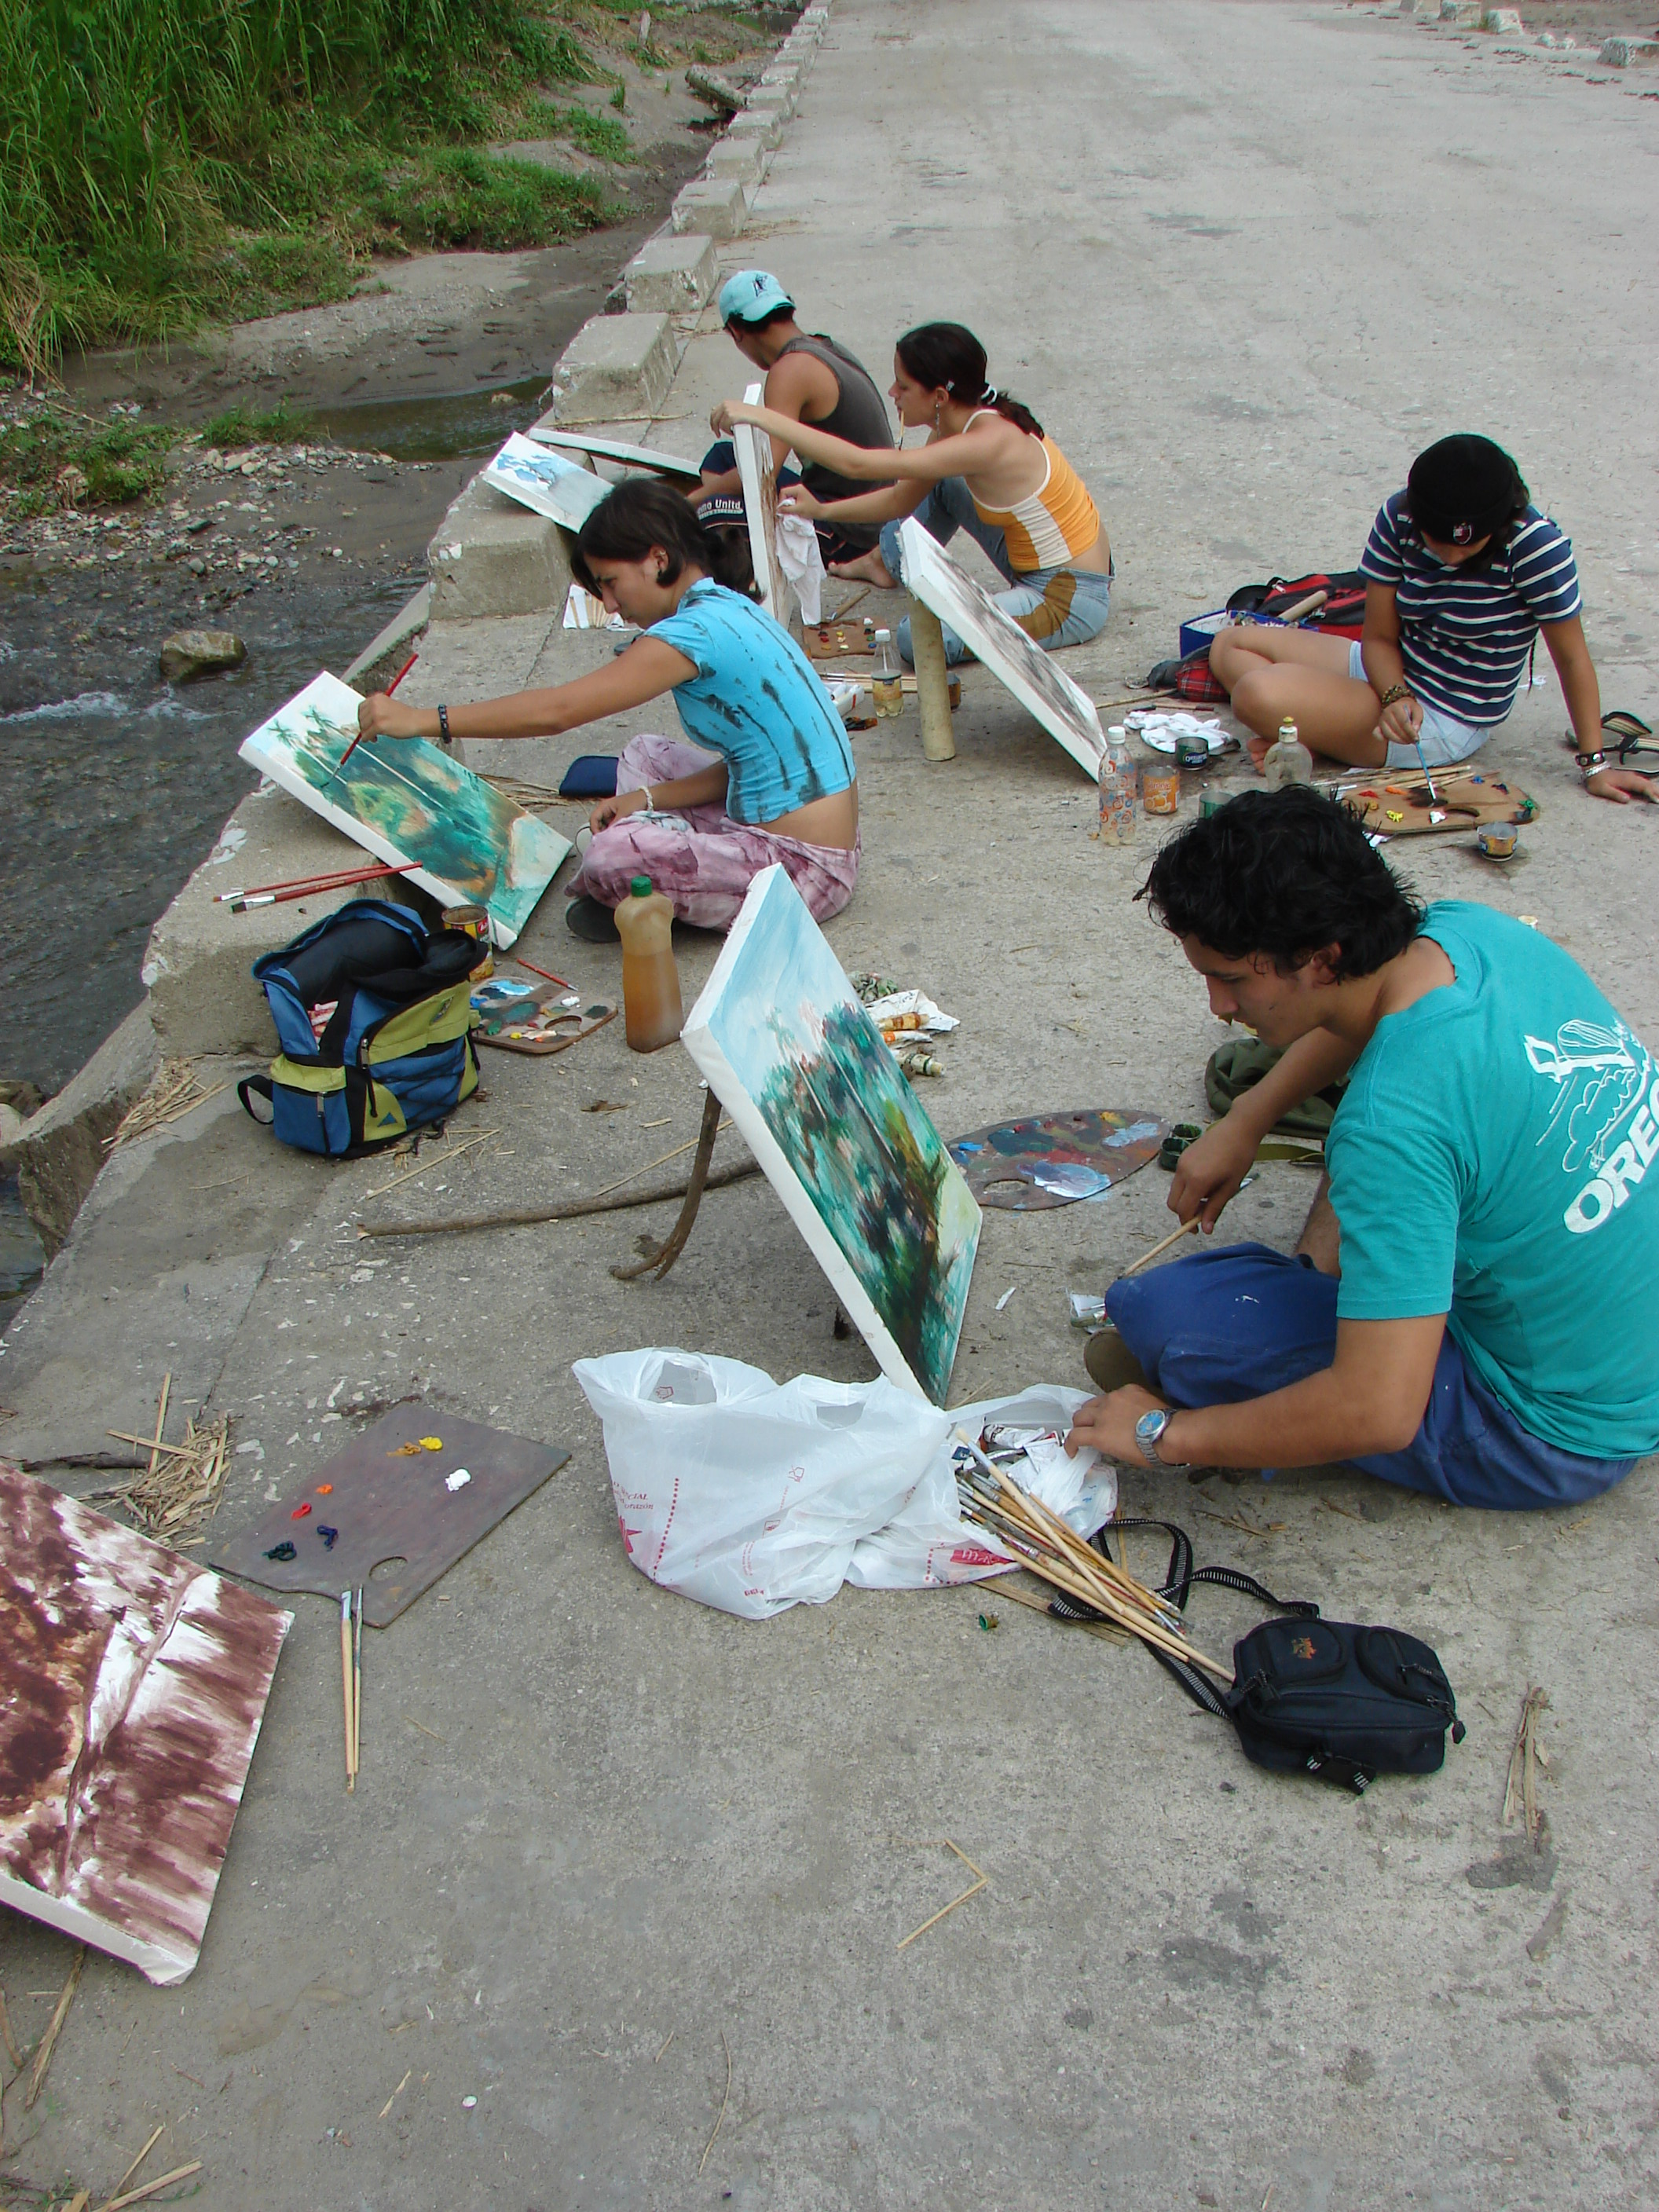 I think this was 2008 (?) not sure rghit now, with a bunch of people from my art school painting landscape from nature! (hope they don't mind the picture XD)